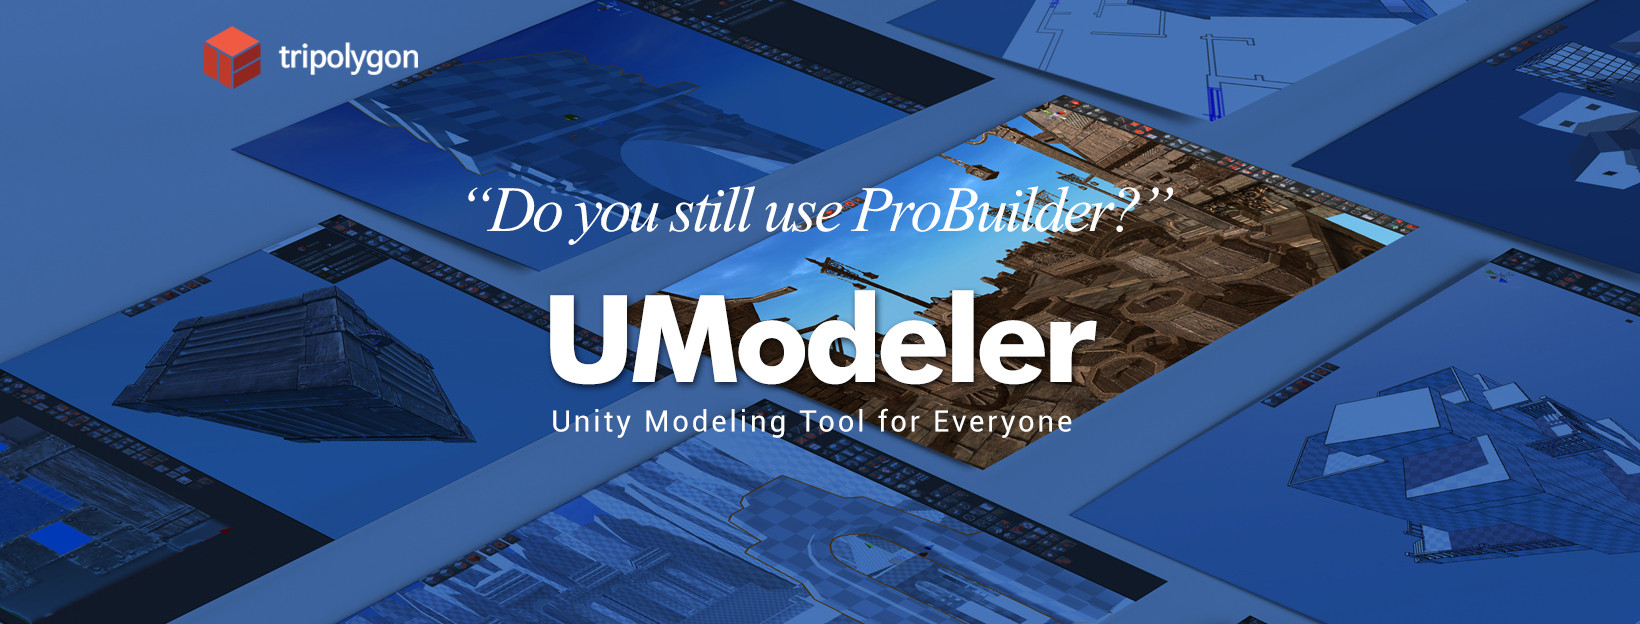 UModeler | Unity Modeling and Prototyping Tool